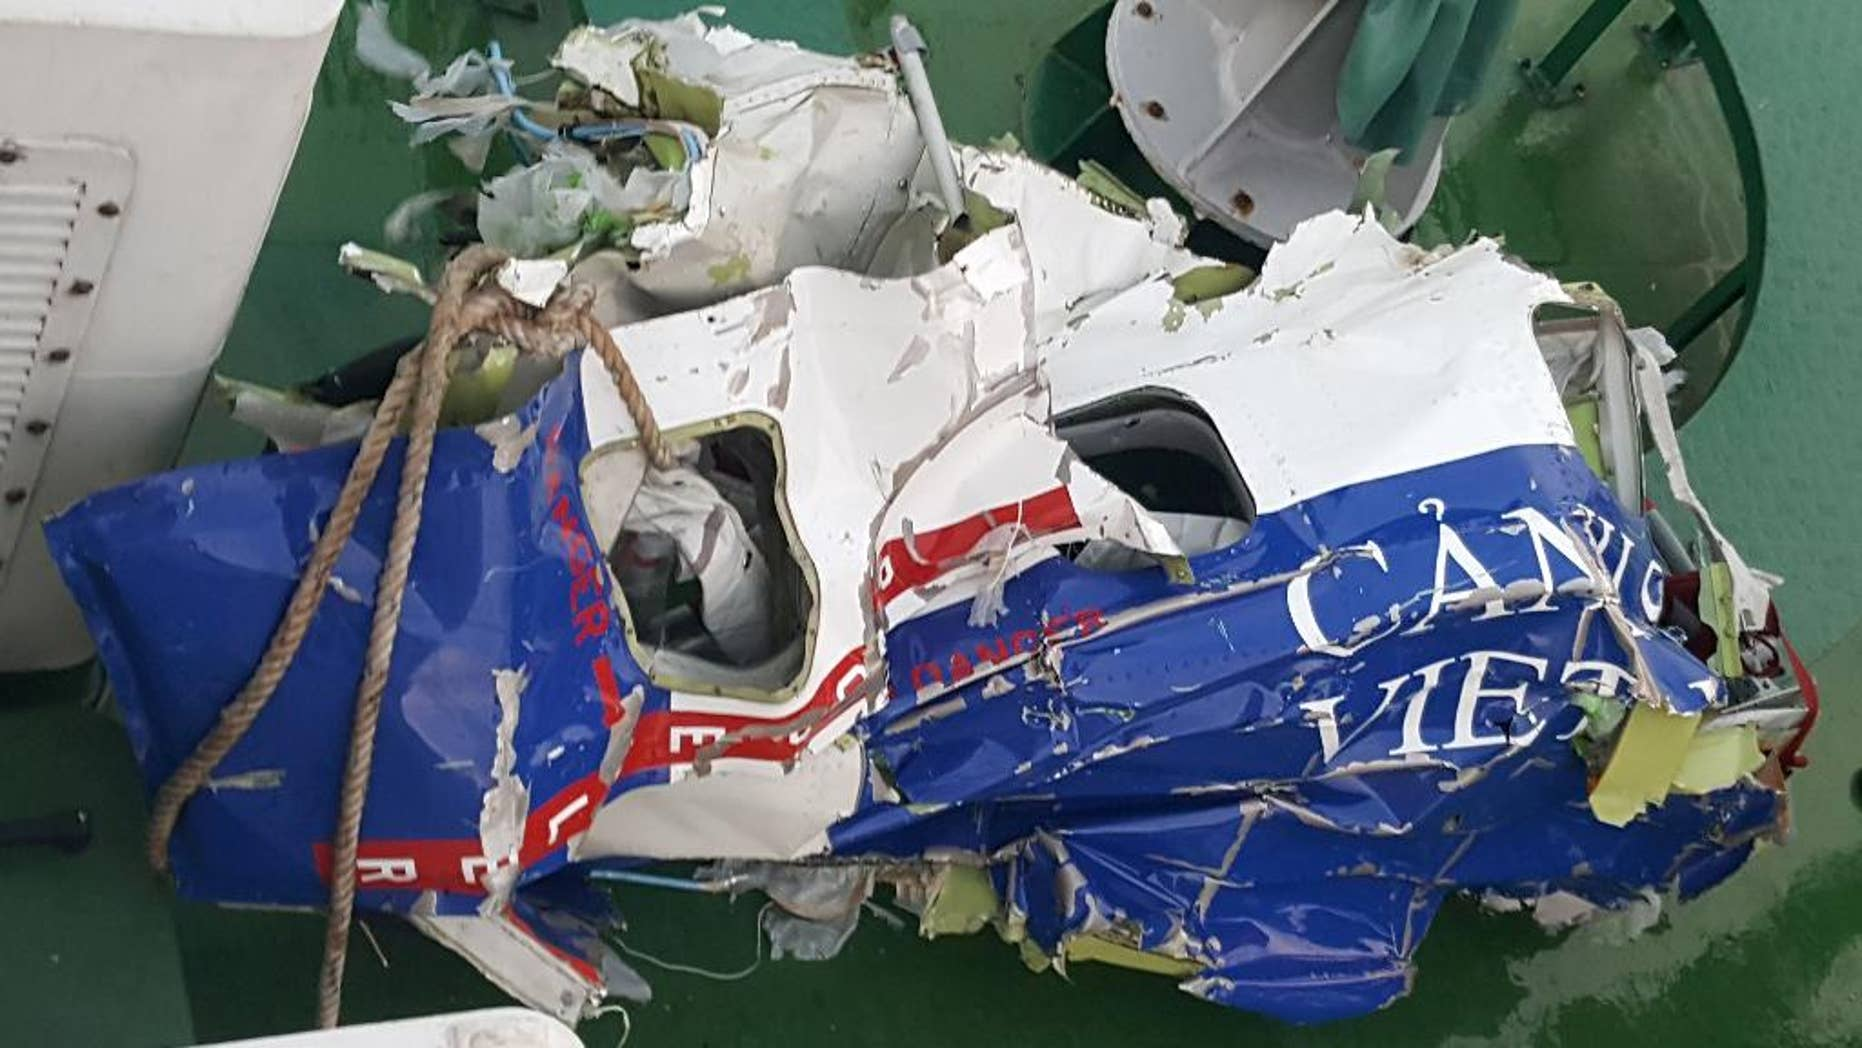 The wreckage of a maritime patrol aircraft that went missing is seen on a maritime police vessel off the coast of northern port city of Hai Phong, Vietnam, Friday, June 17, 2016.  Vietnamese rescuers have found some pieces belonging to a search plane that went missing with nine people aboard while attempting to locate a pilot from a crashed fighter jet, the military said Friday. (Hong Pha/Vietnam News Agency via AP)